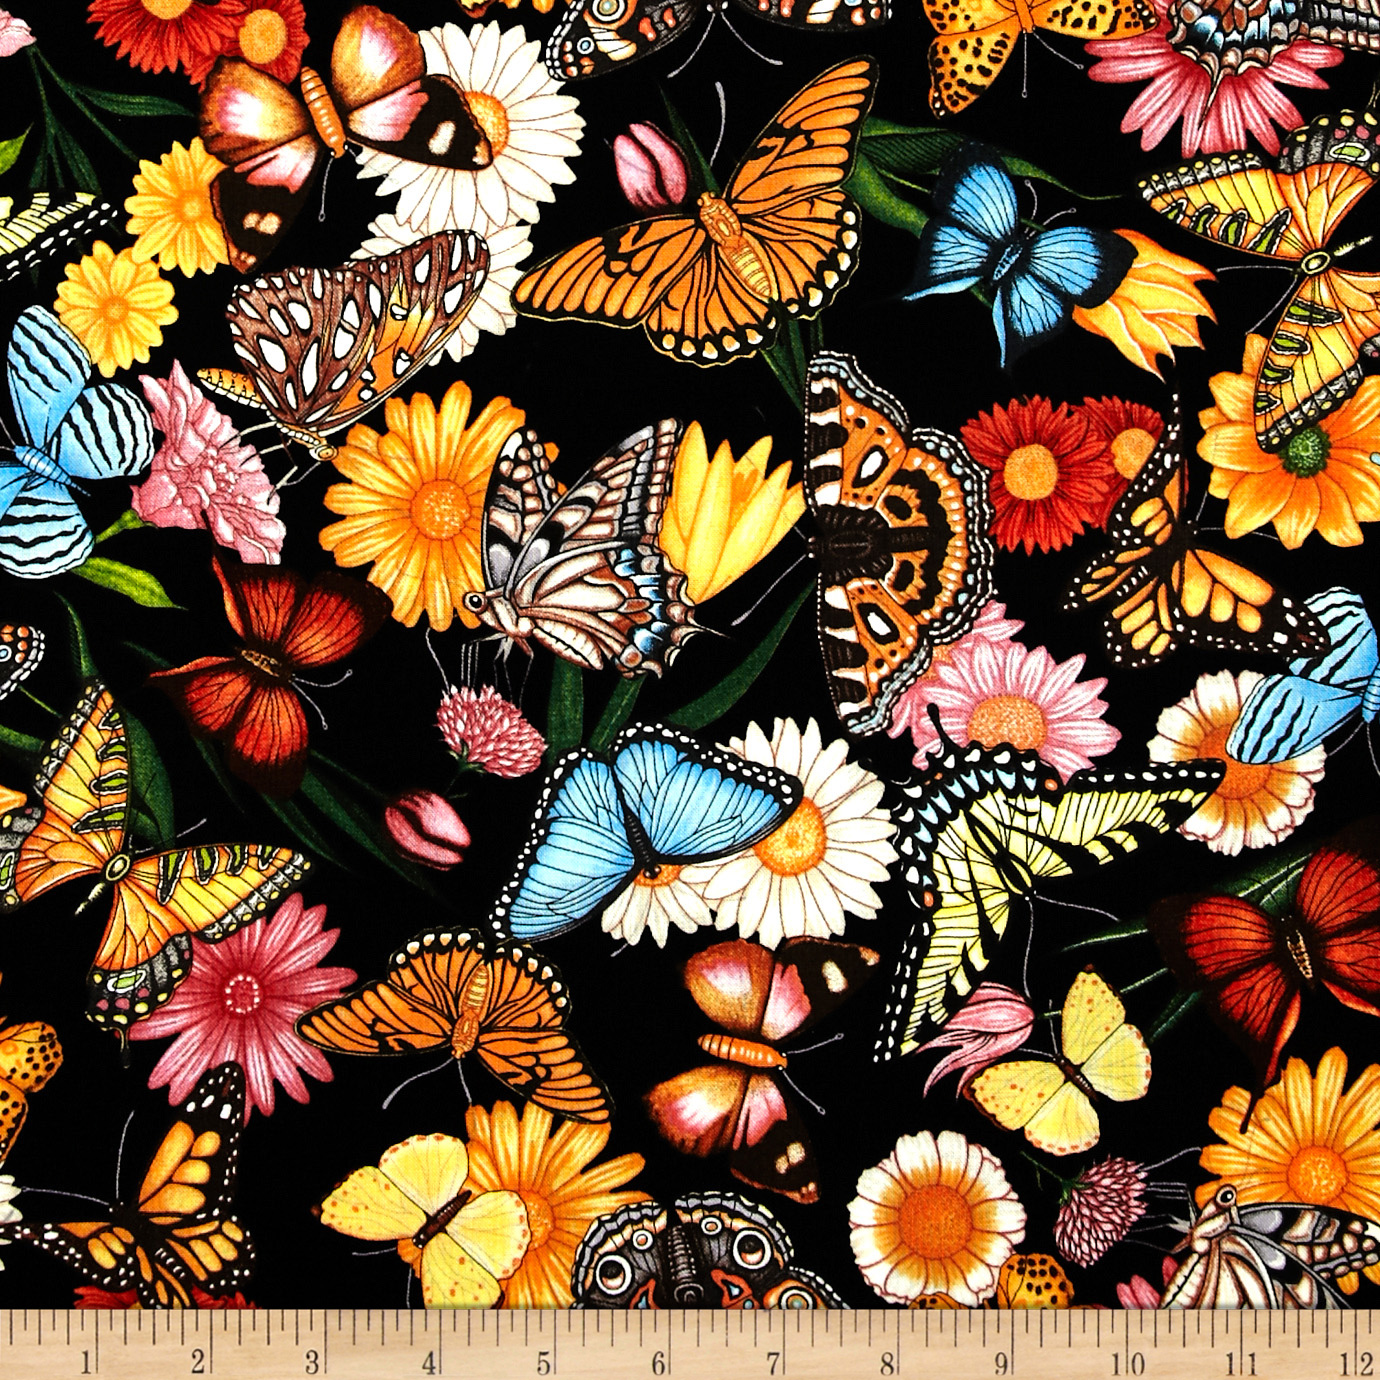 Spring Symphony Butterflies Black Fabric